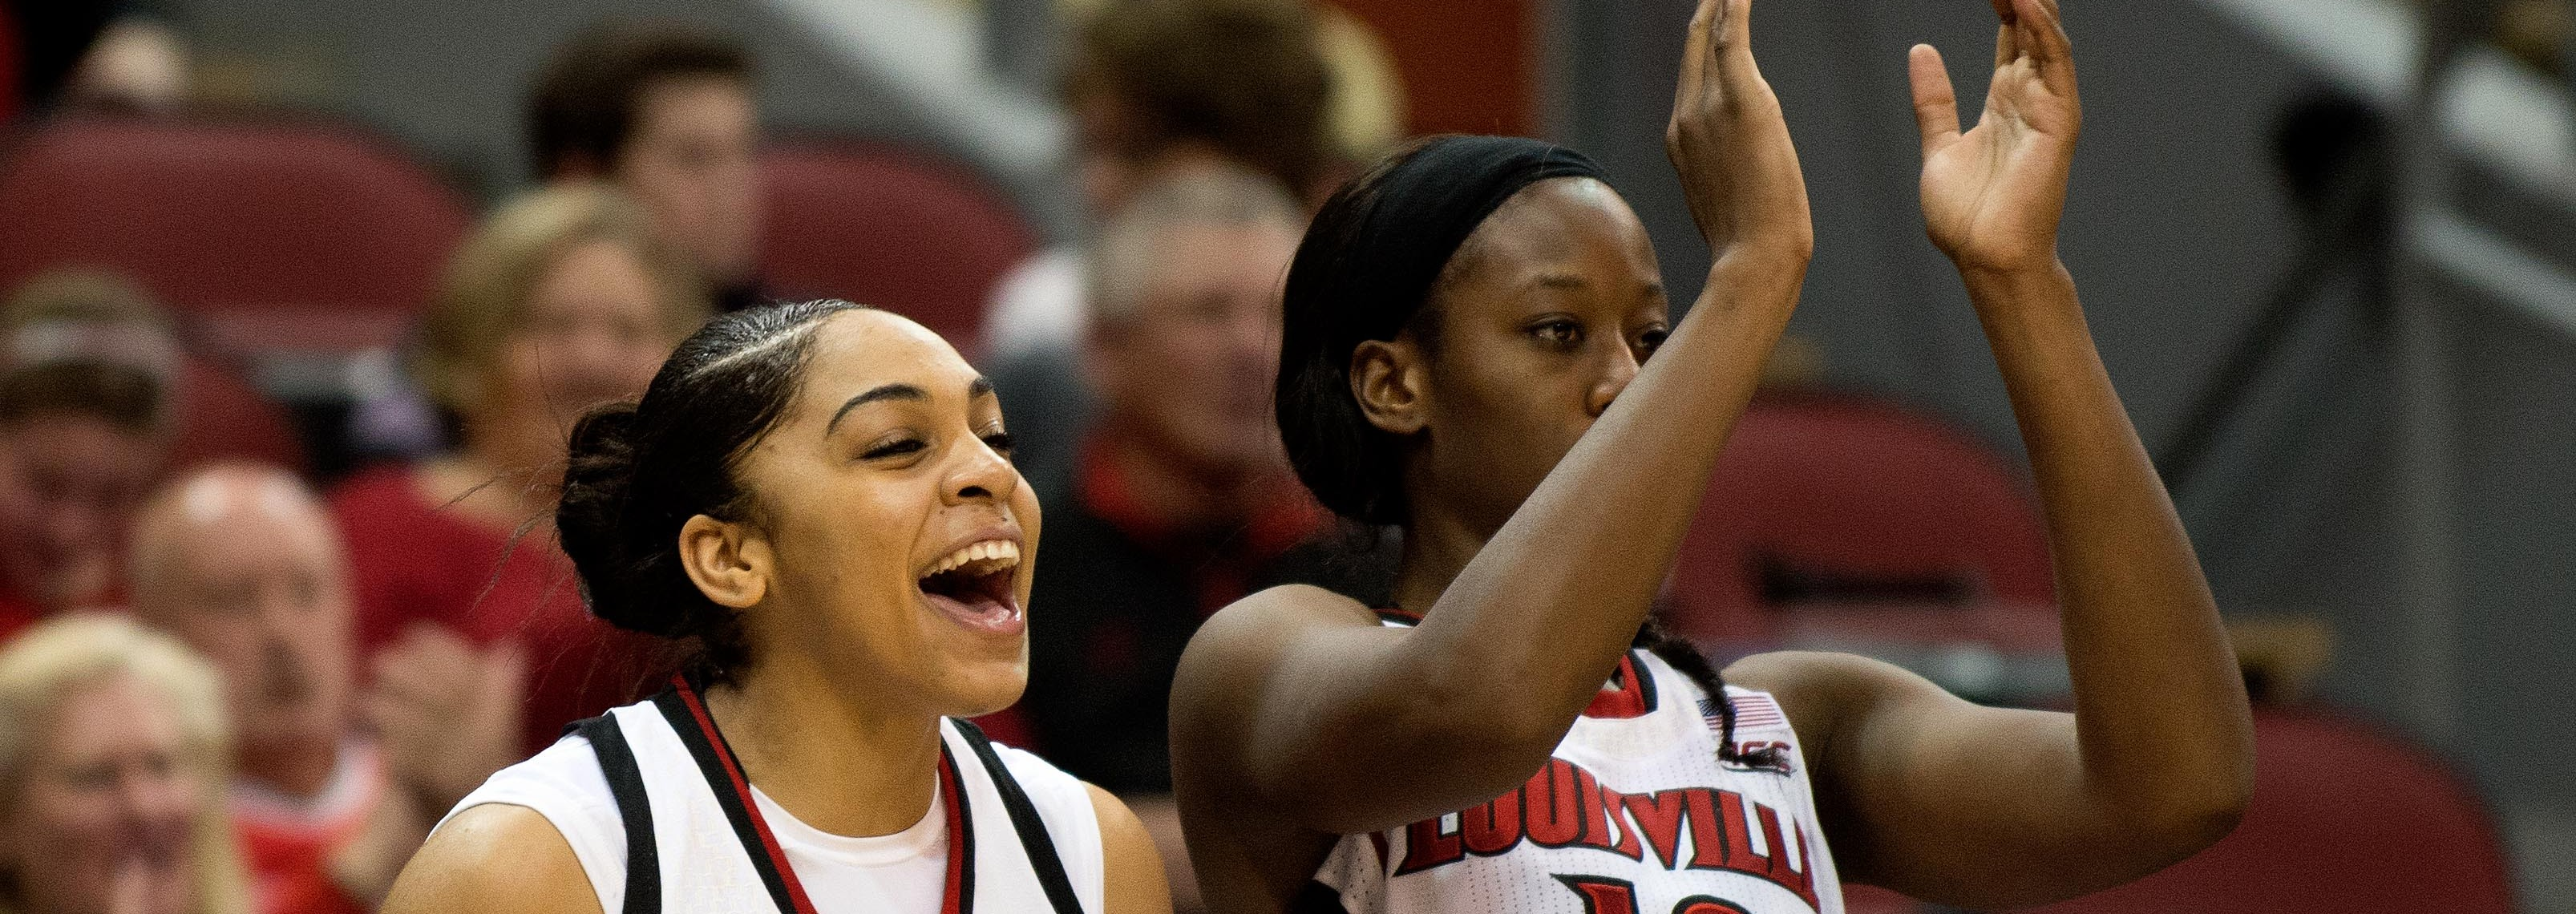 Bria Smith & Shawnta' Dyer Louisville vs. Belmont Photo By Adam Creech